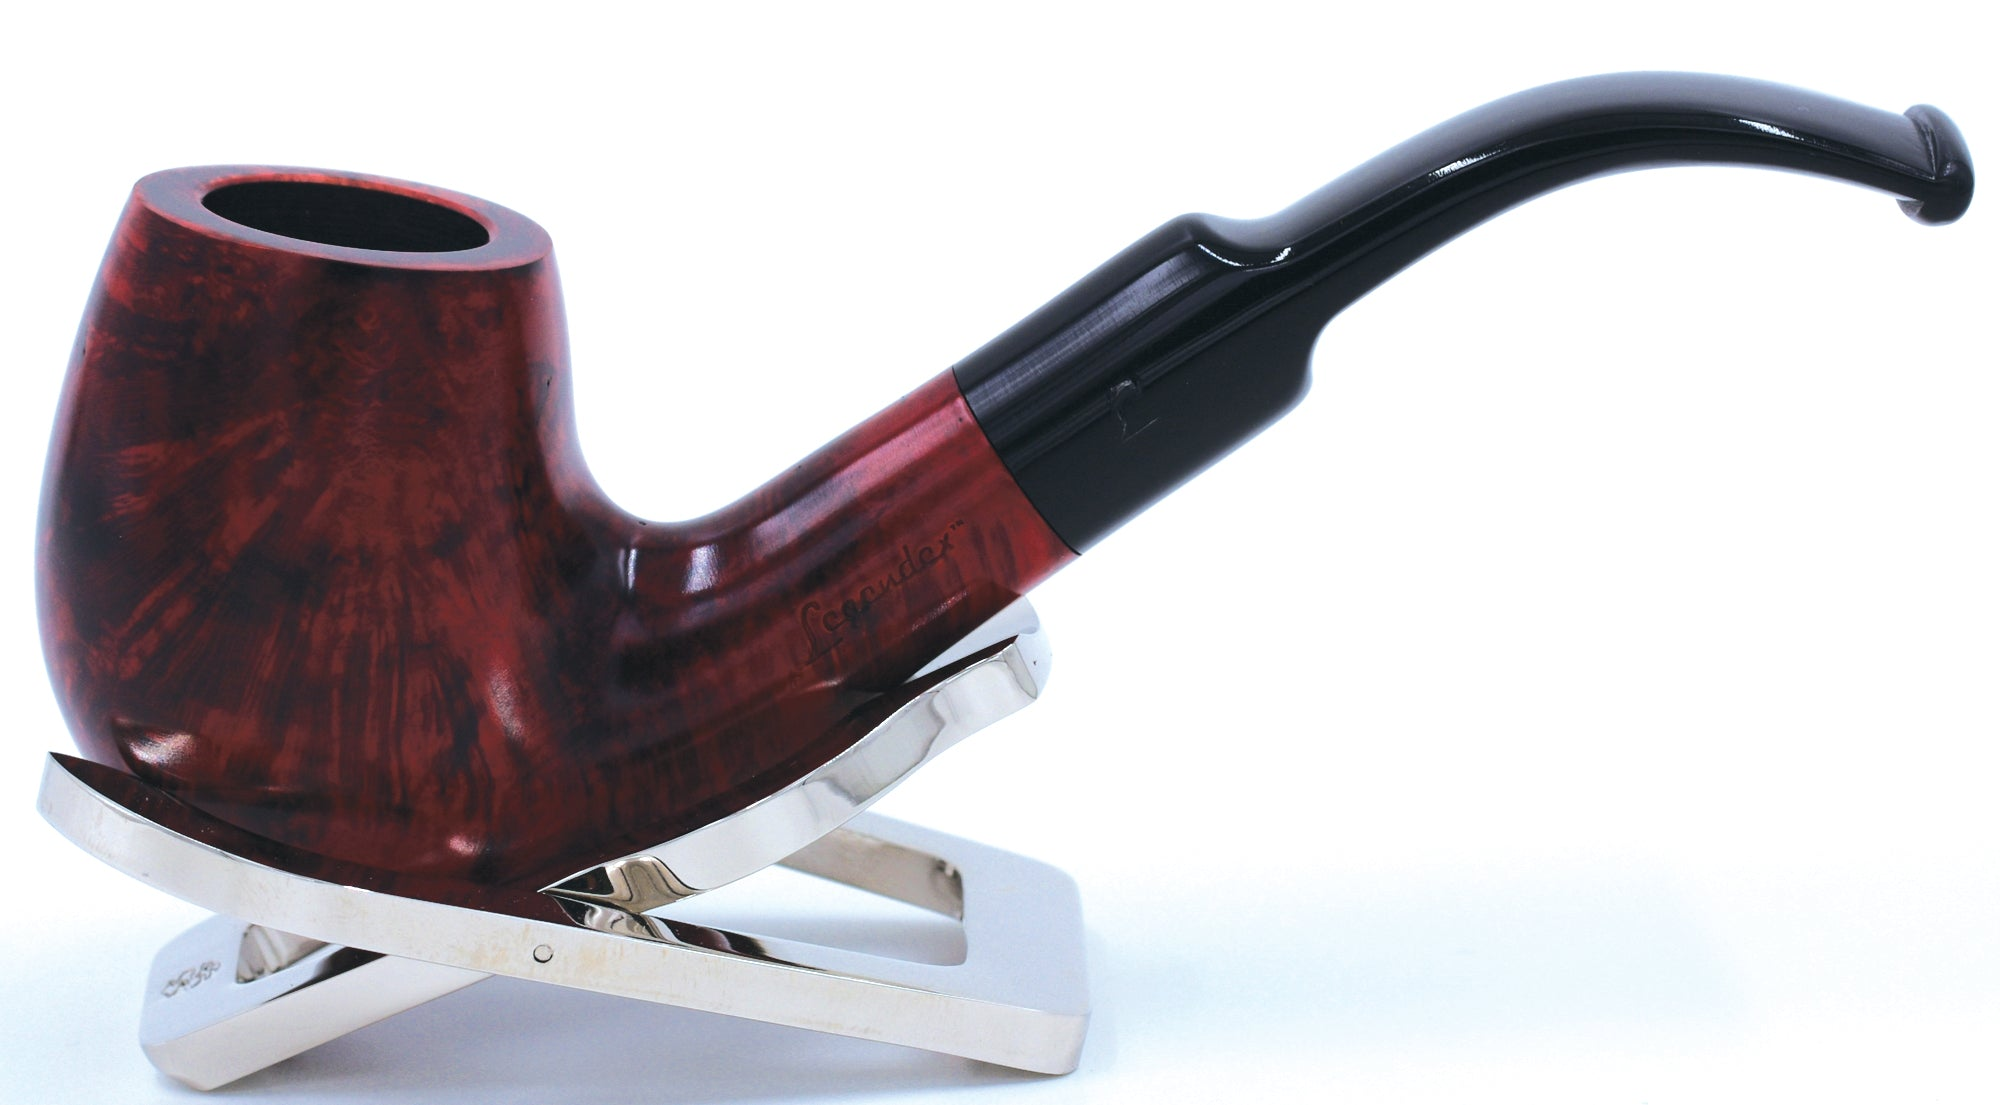 LEGENDEX® PAGANINI* 9 MM Filtered Briar Smoking Pipe Made In Italy 01-08-302